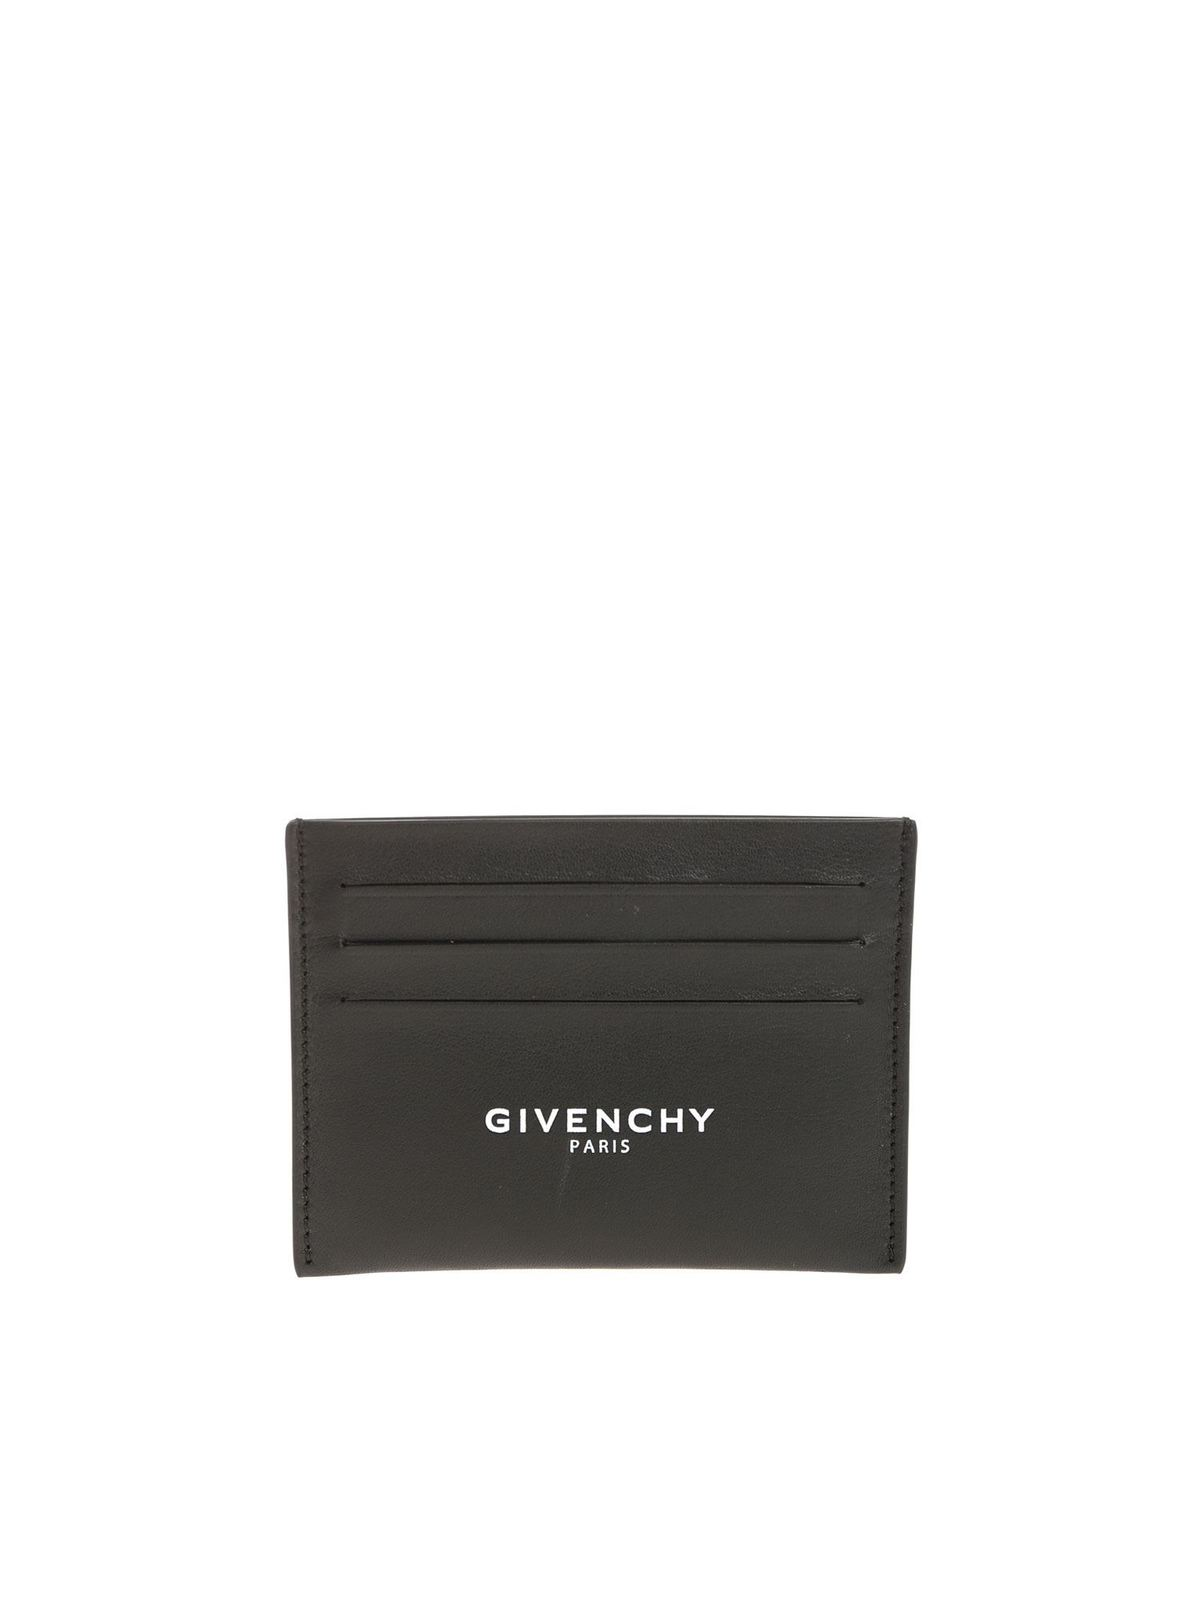 Givenchy Black Card Holder With White Logo Print